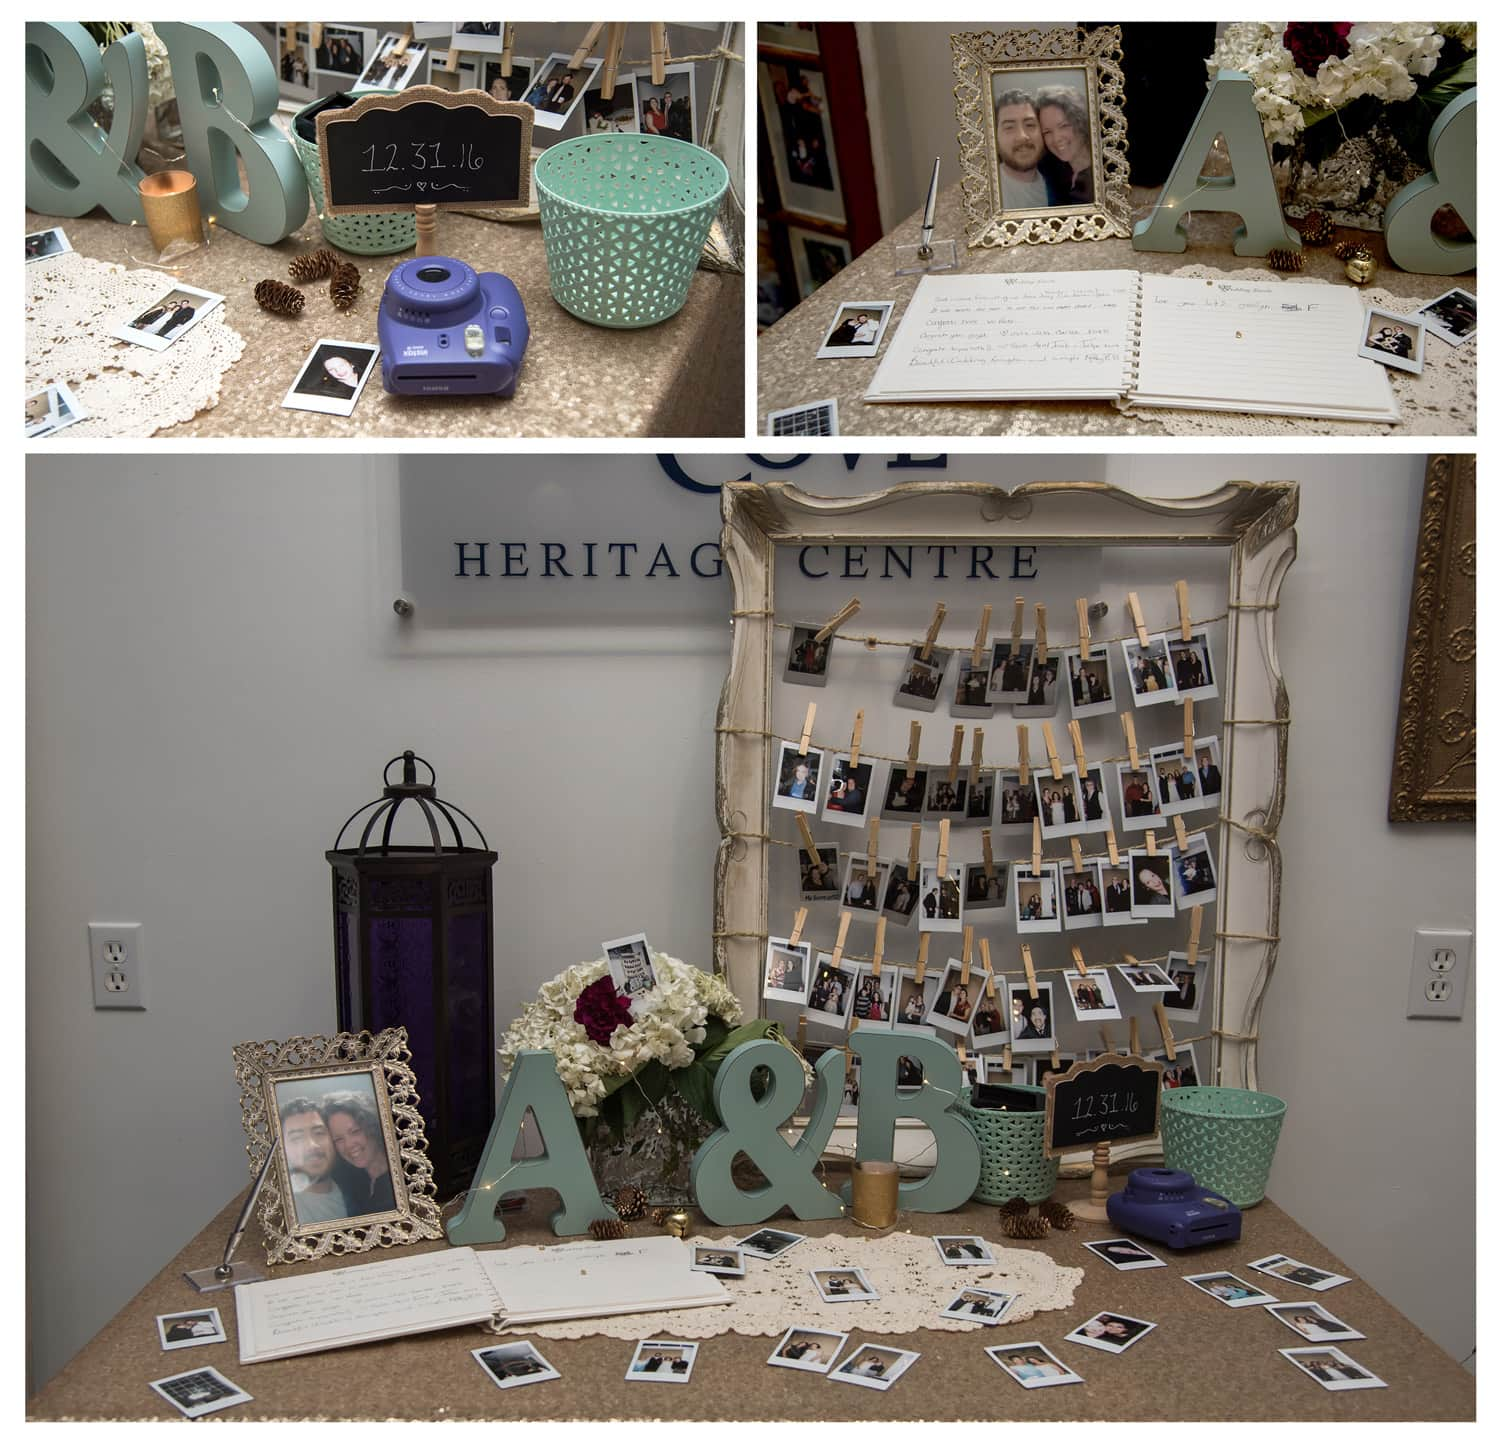 a poloroid guest book for wedding guests to take pictures of themselves and sign